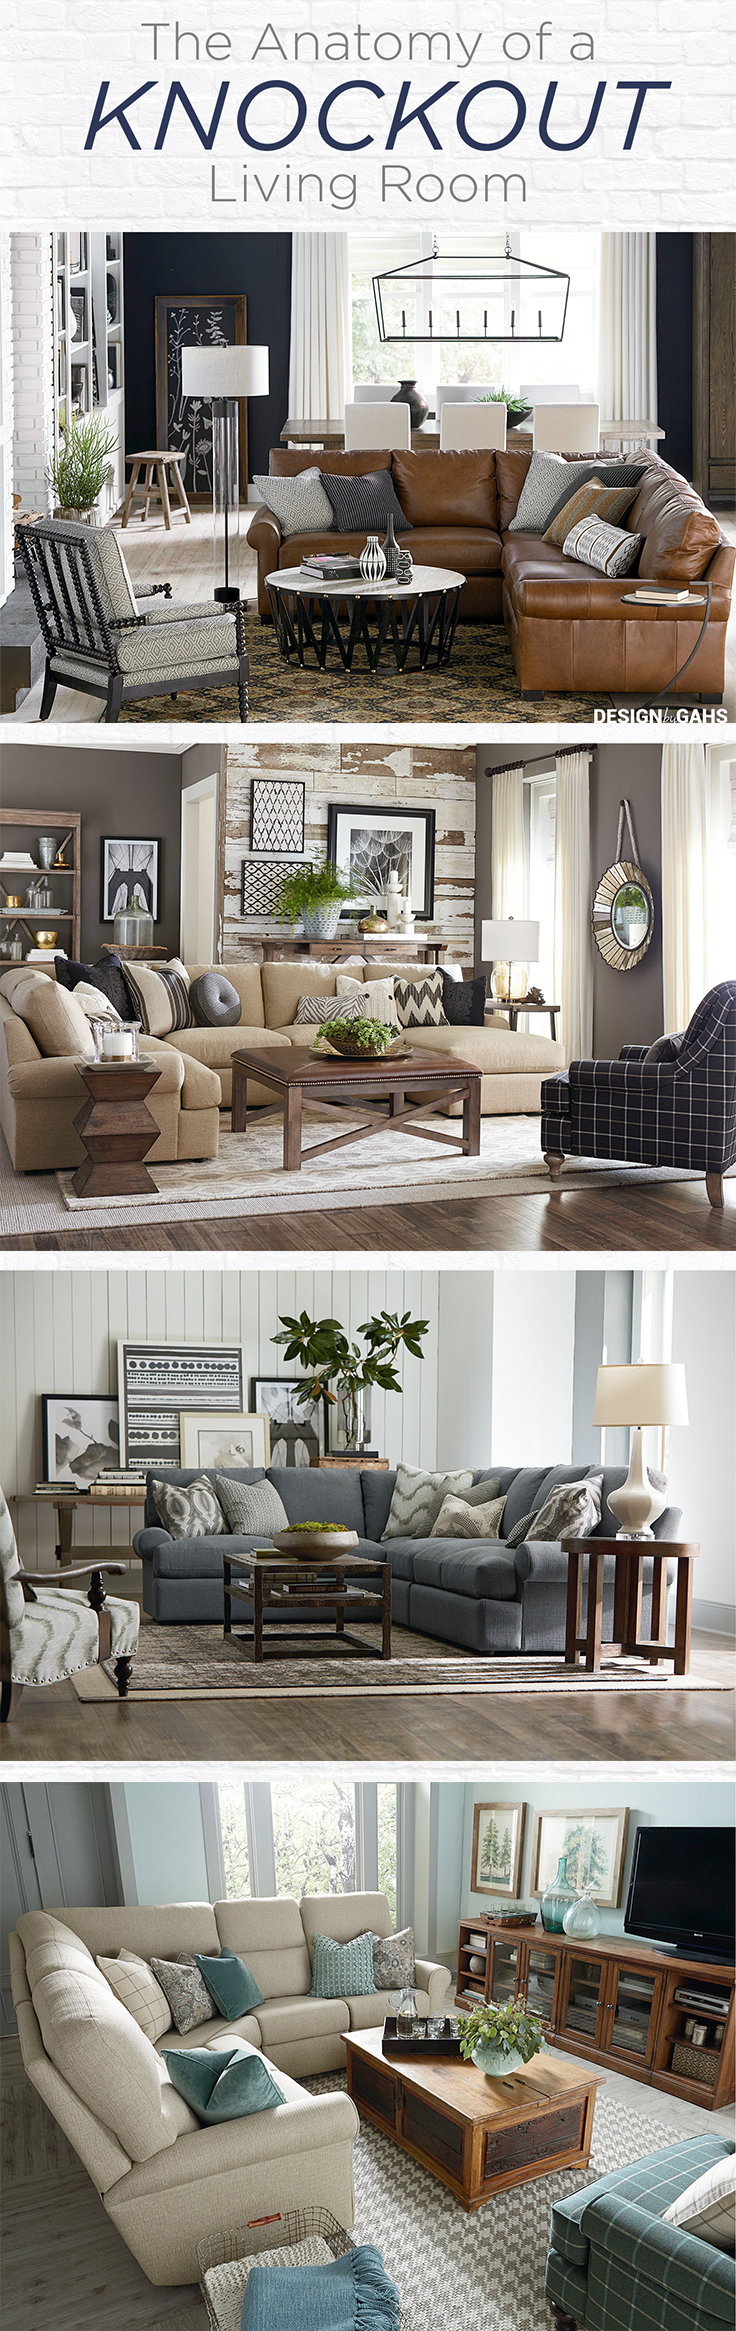 Amazing living room design may not be an exact science, but we're sharing ALL the secrets in the book!